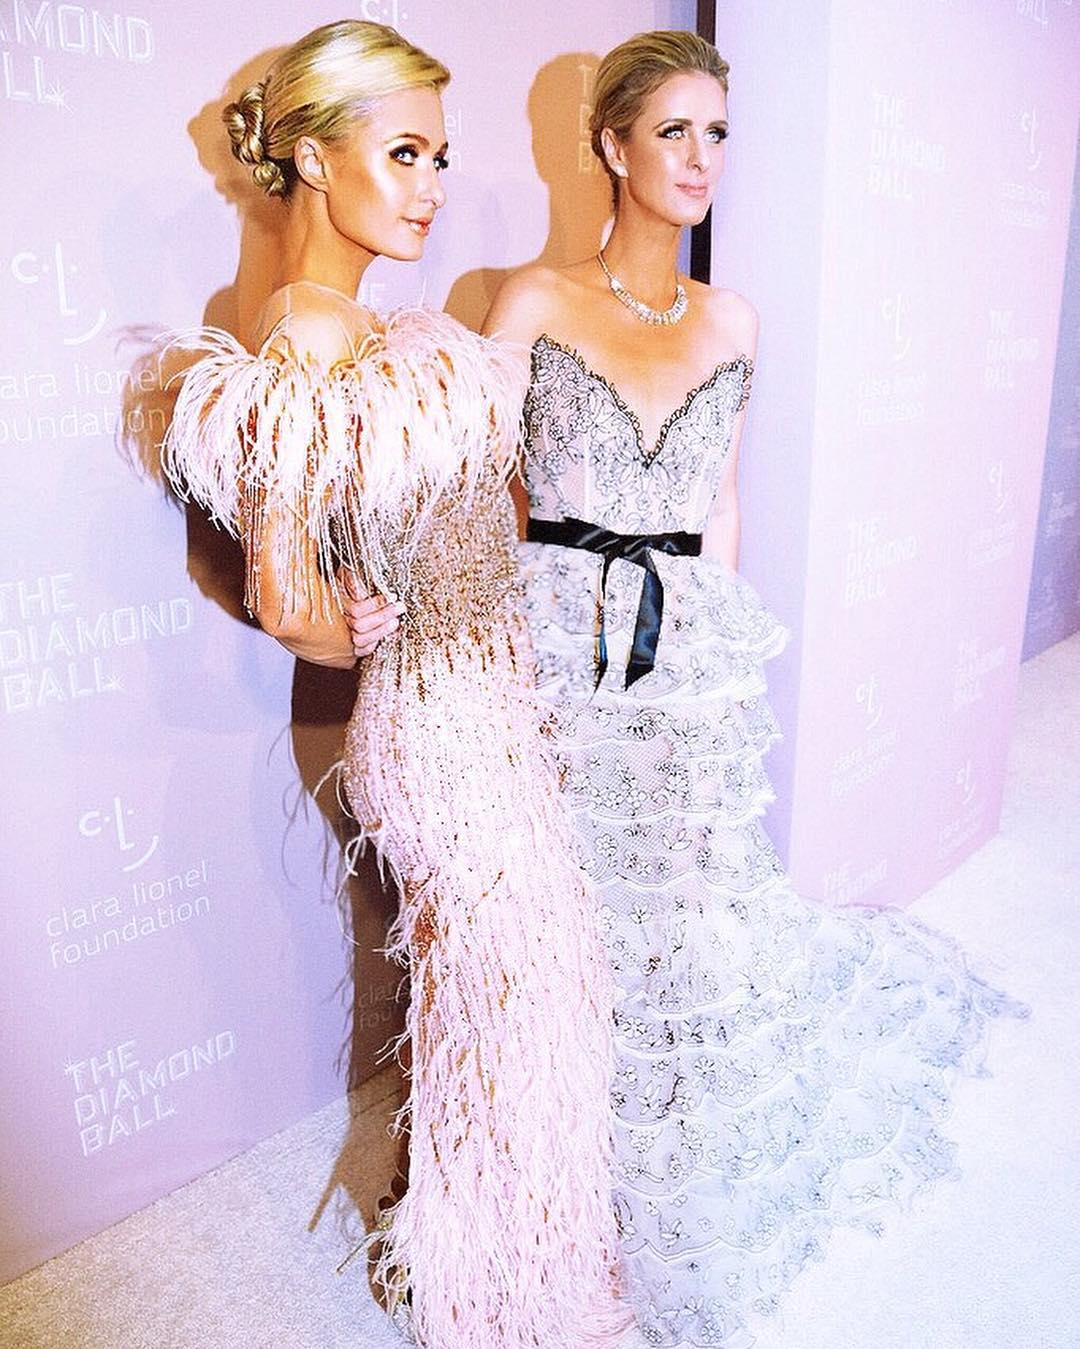 Paris Hilton Wearing Feathered Pencil Dress At Clara Lionel Foundation Event 2021